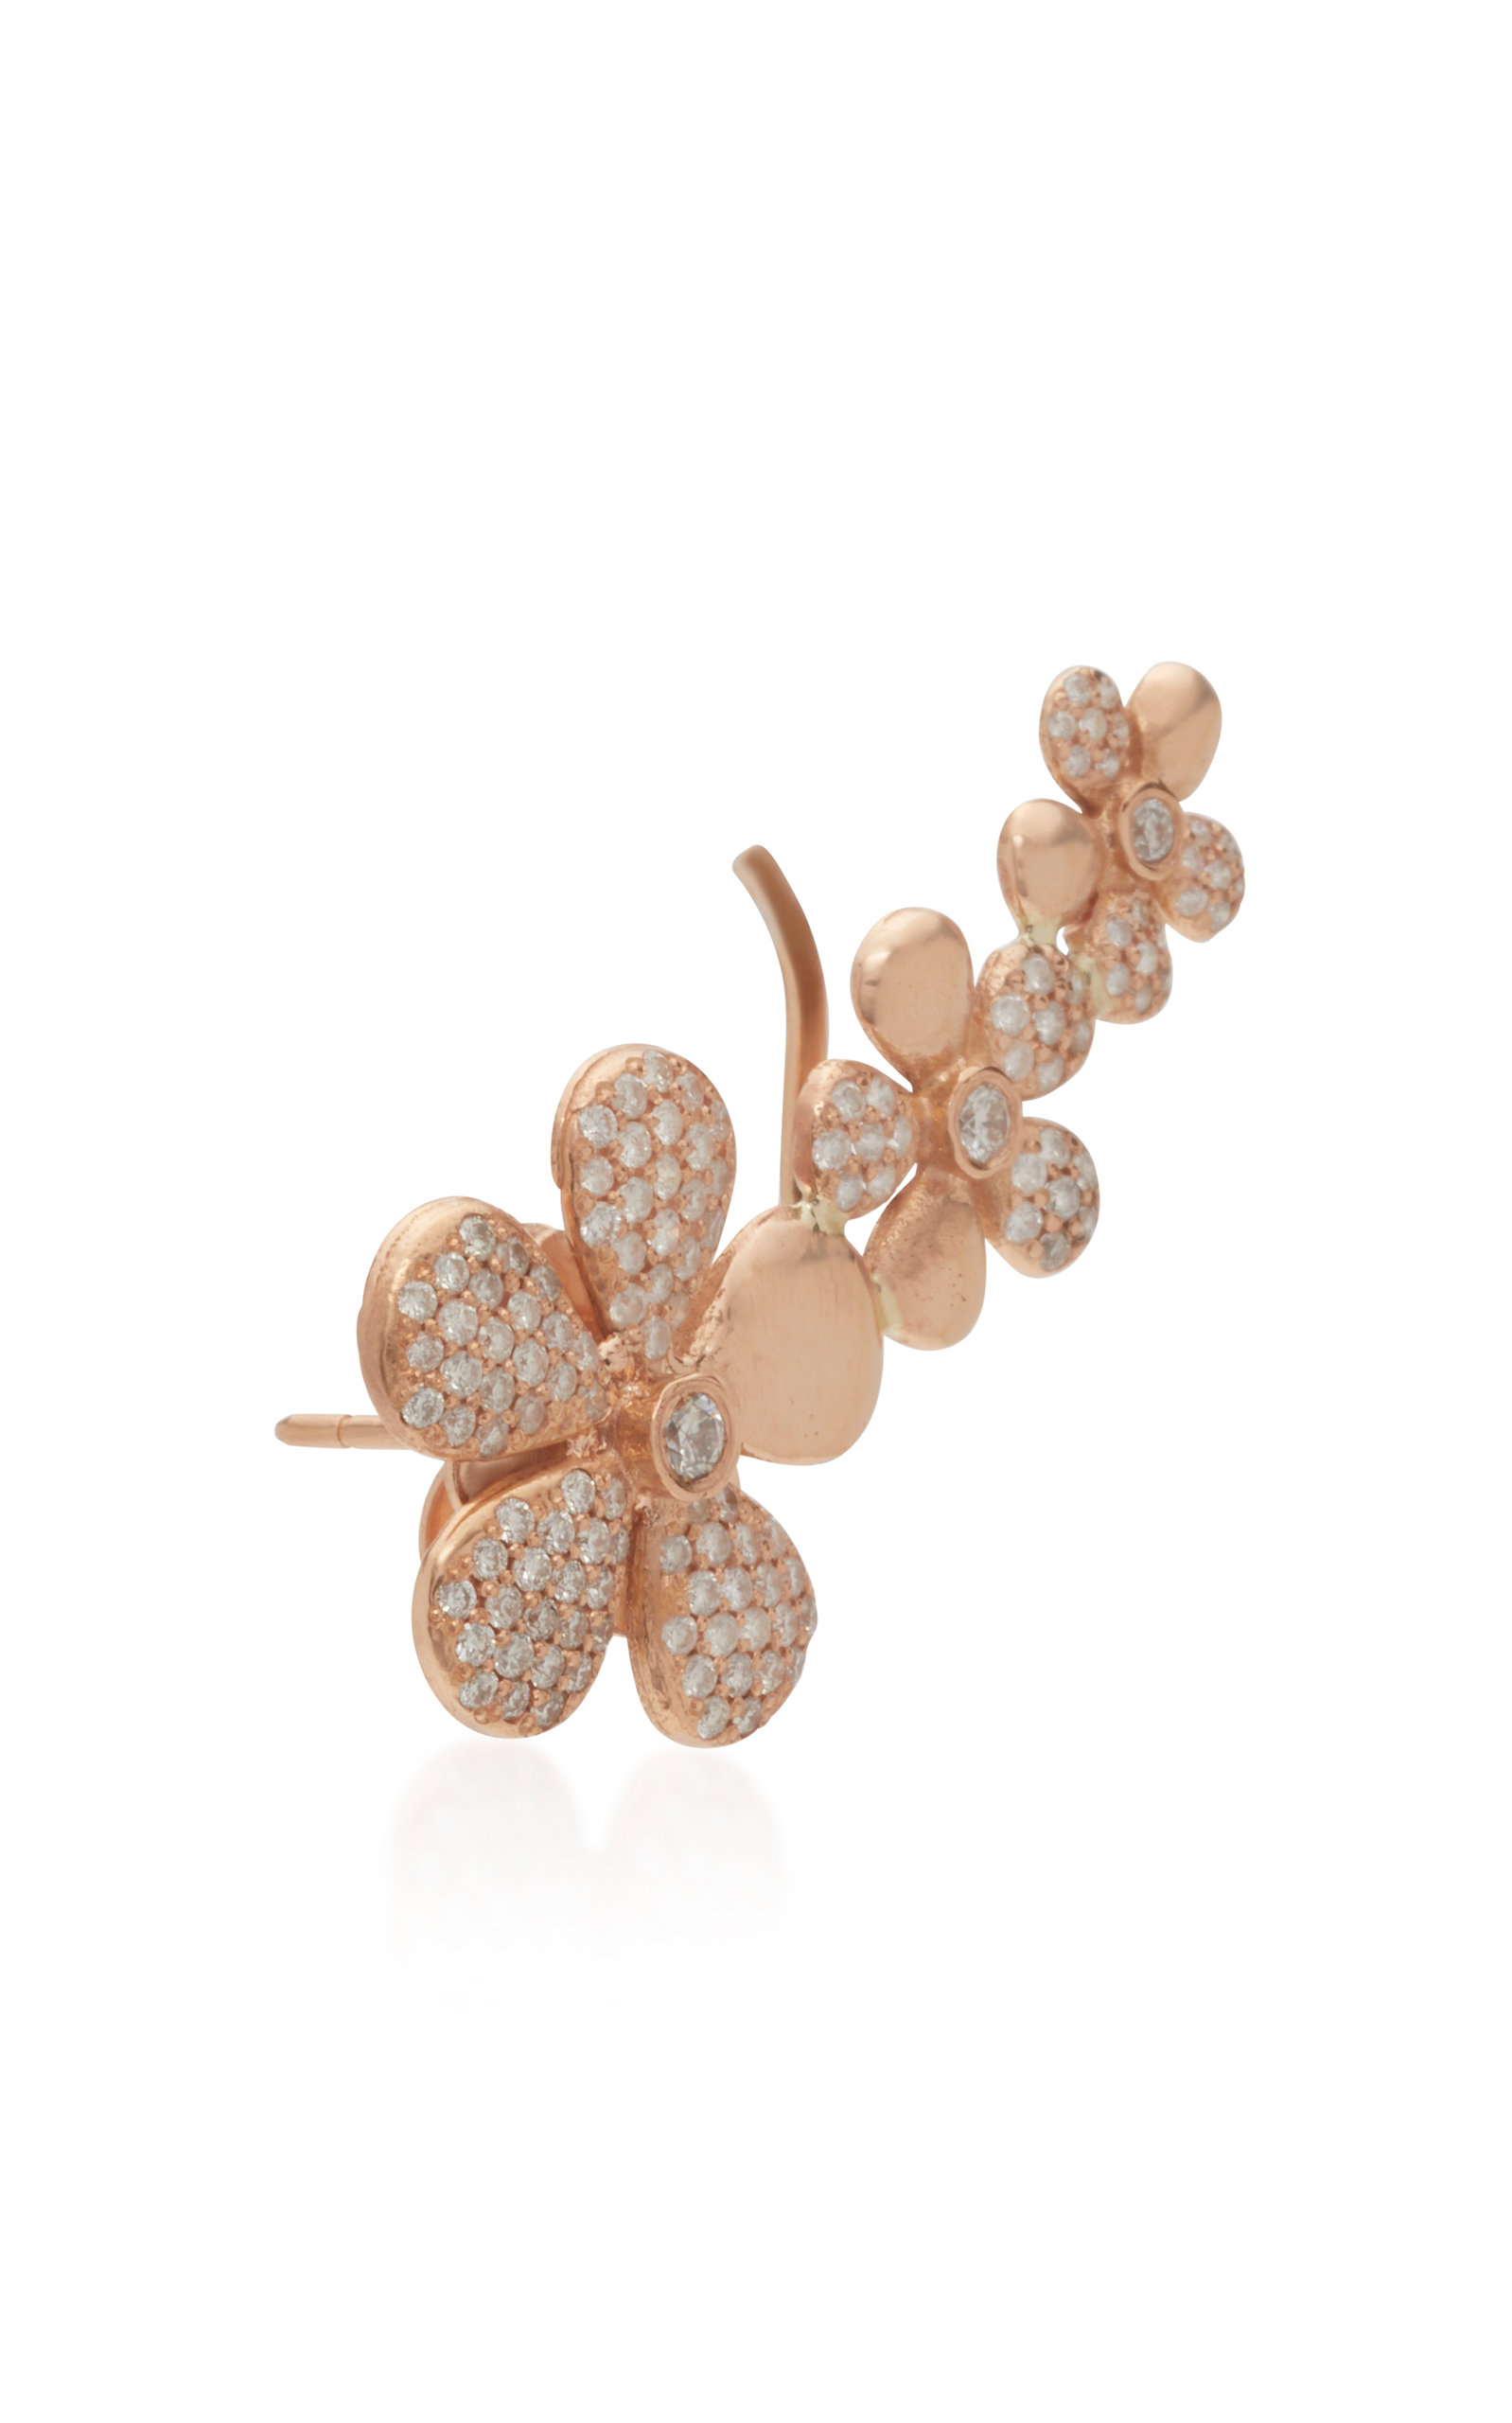 Floral 18k Rose Gold And Diamond Ear Climber By Colette Jewelry